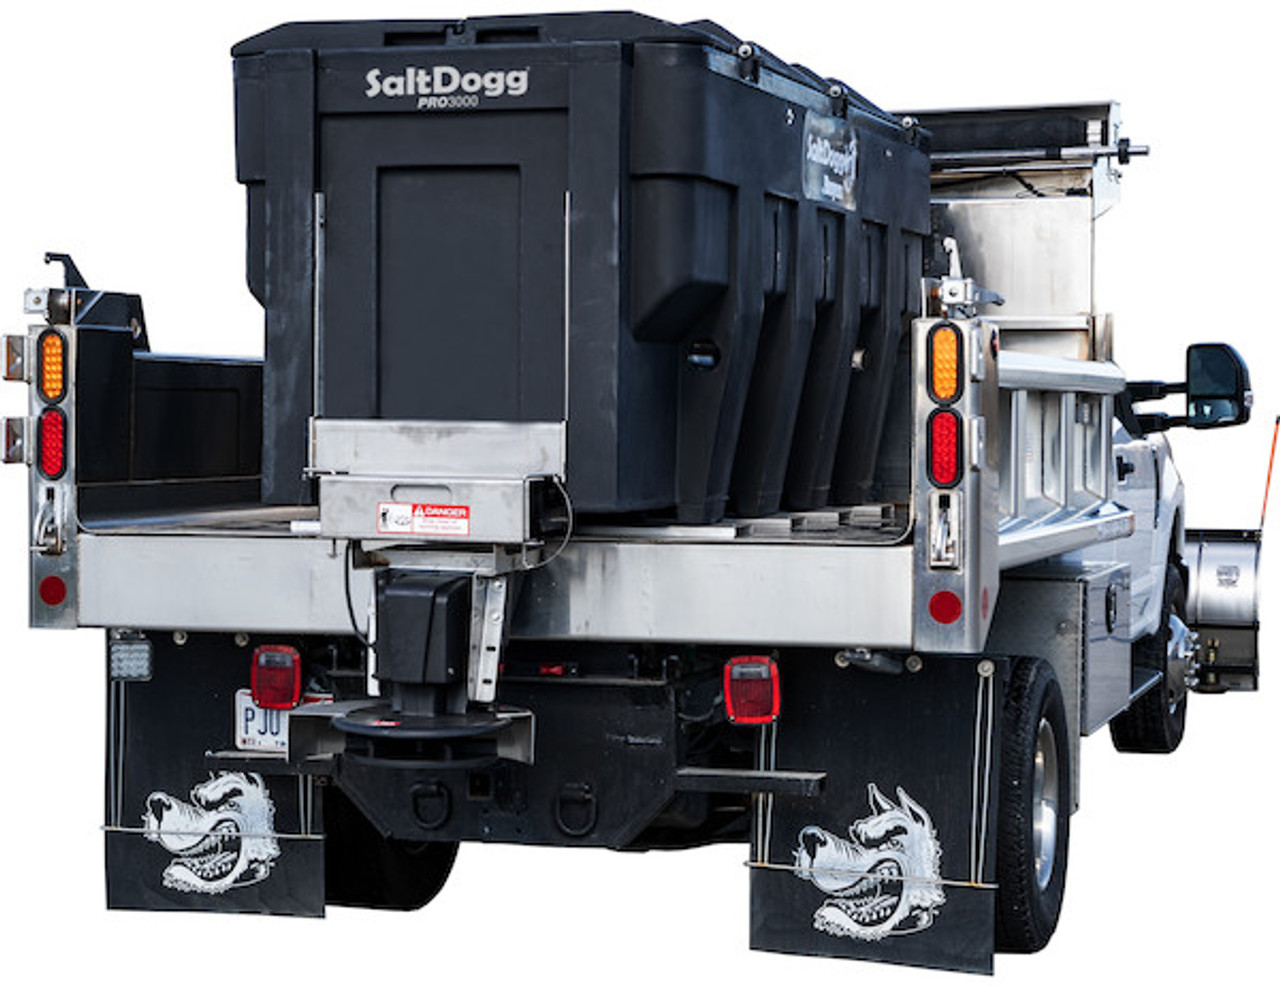 PRO3000CH BUYERS SALTDOGG ELECTRIC POLY HOPPER SPREADER WITH CONVEYOR CHAIN 1